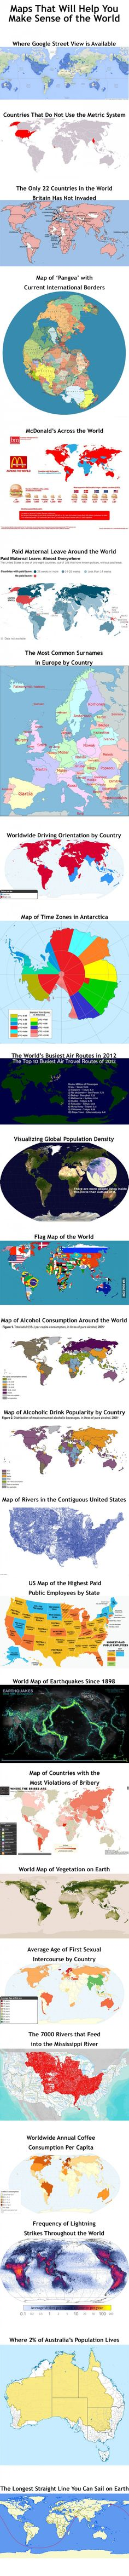 Maps That Will Help You Make Sense Of The World This is so cool!  There seems to be one for everything.  Lots of teaching opportunities here!